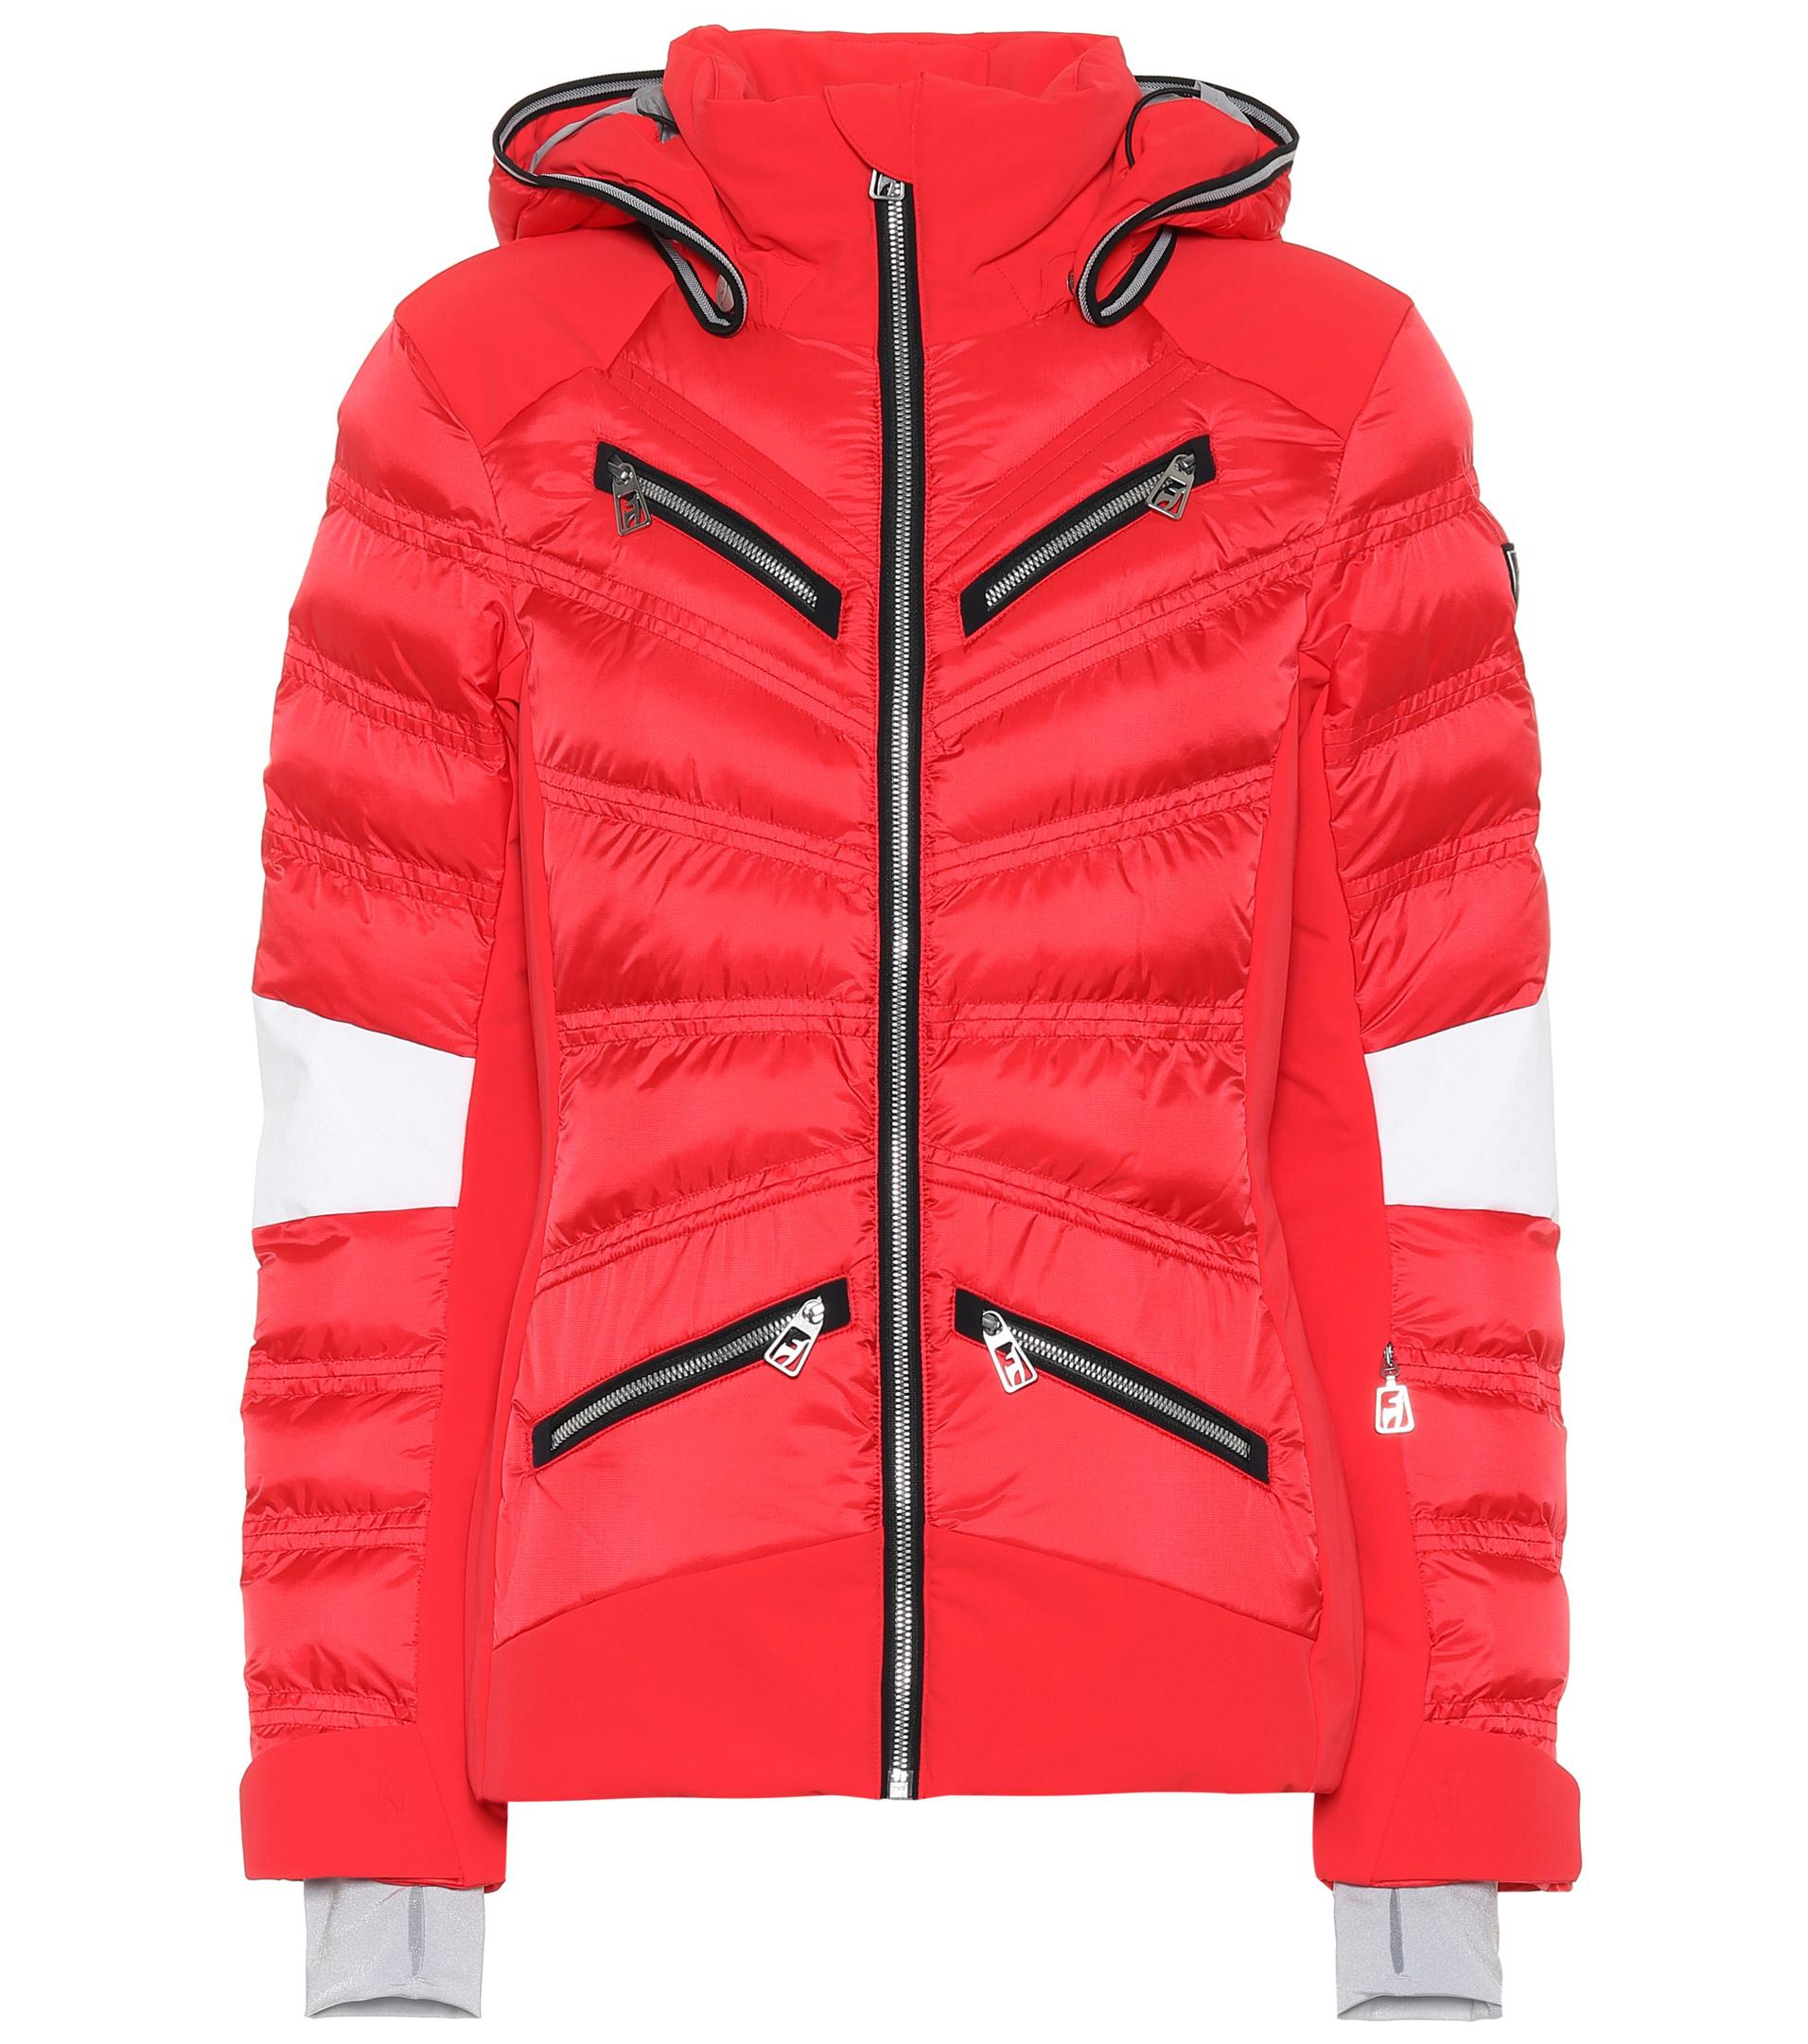 a2260988fab51 Toni Sailer Sibilla Ski Jacket in Red - Lyst